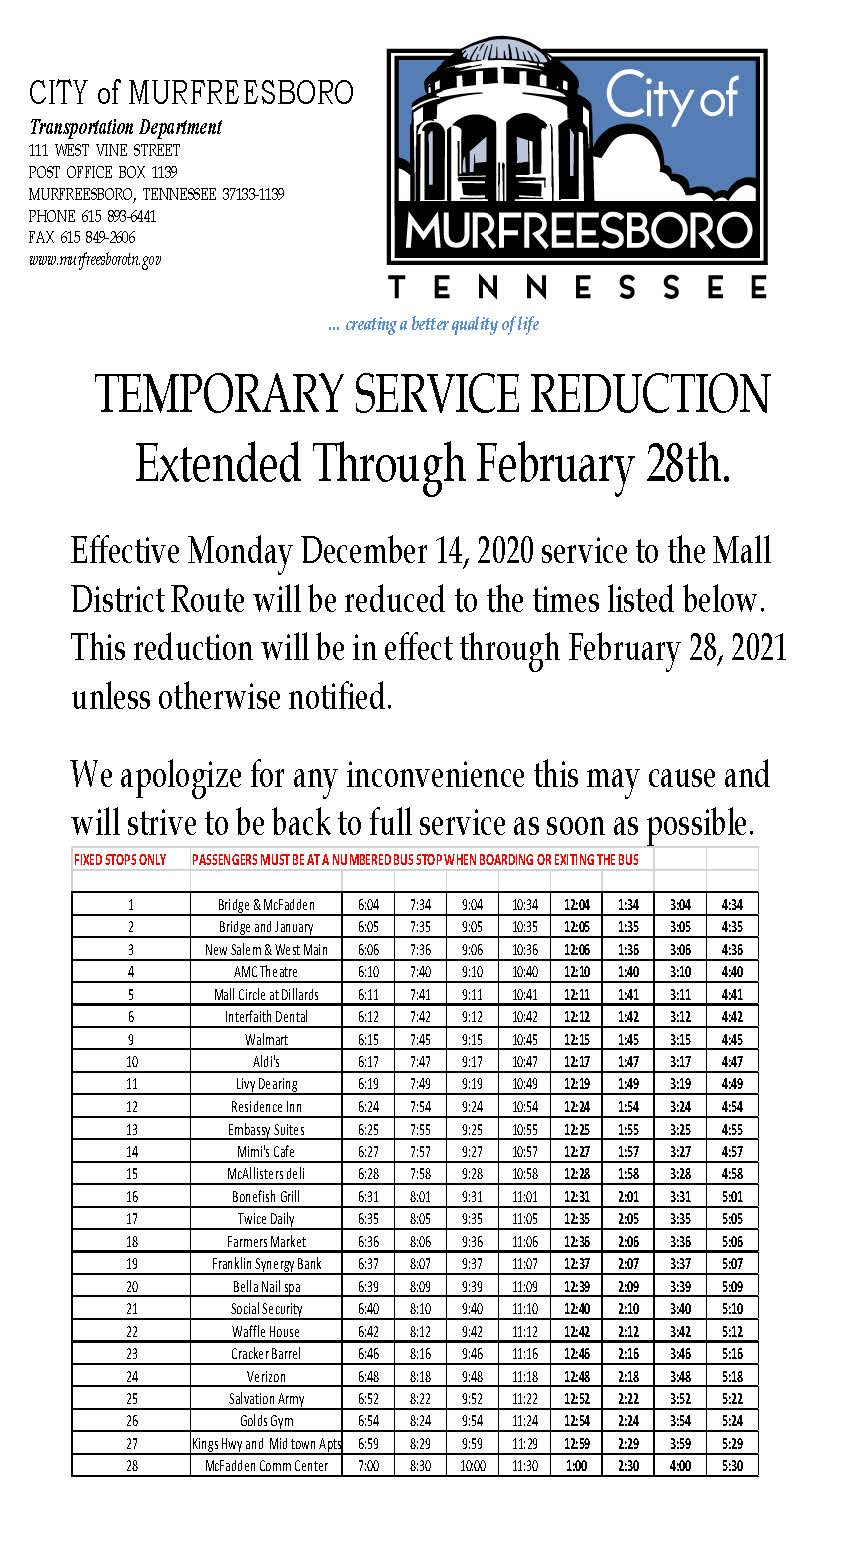 Temporary Service Reduction 01.20.2021